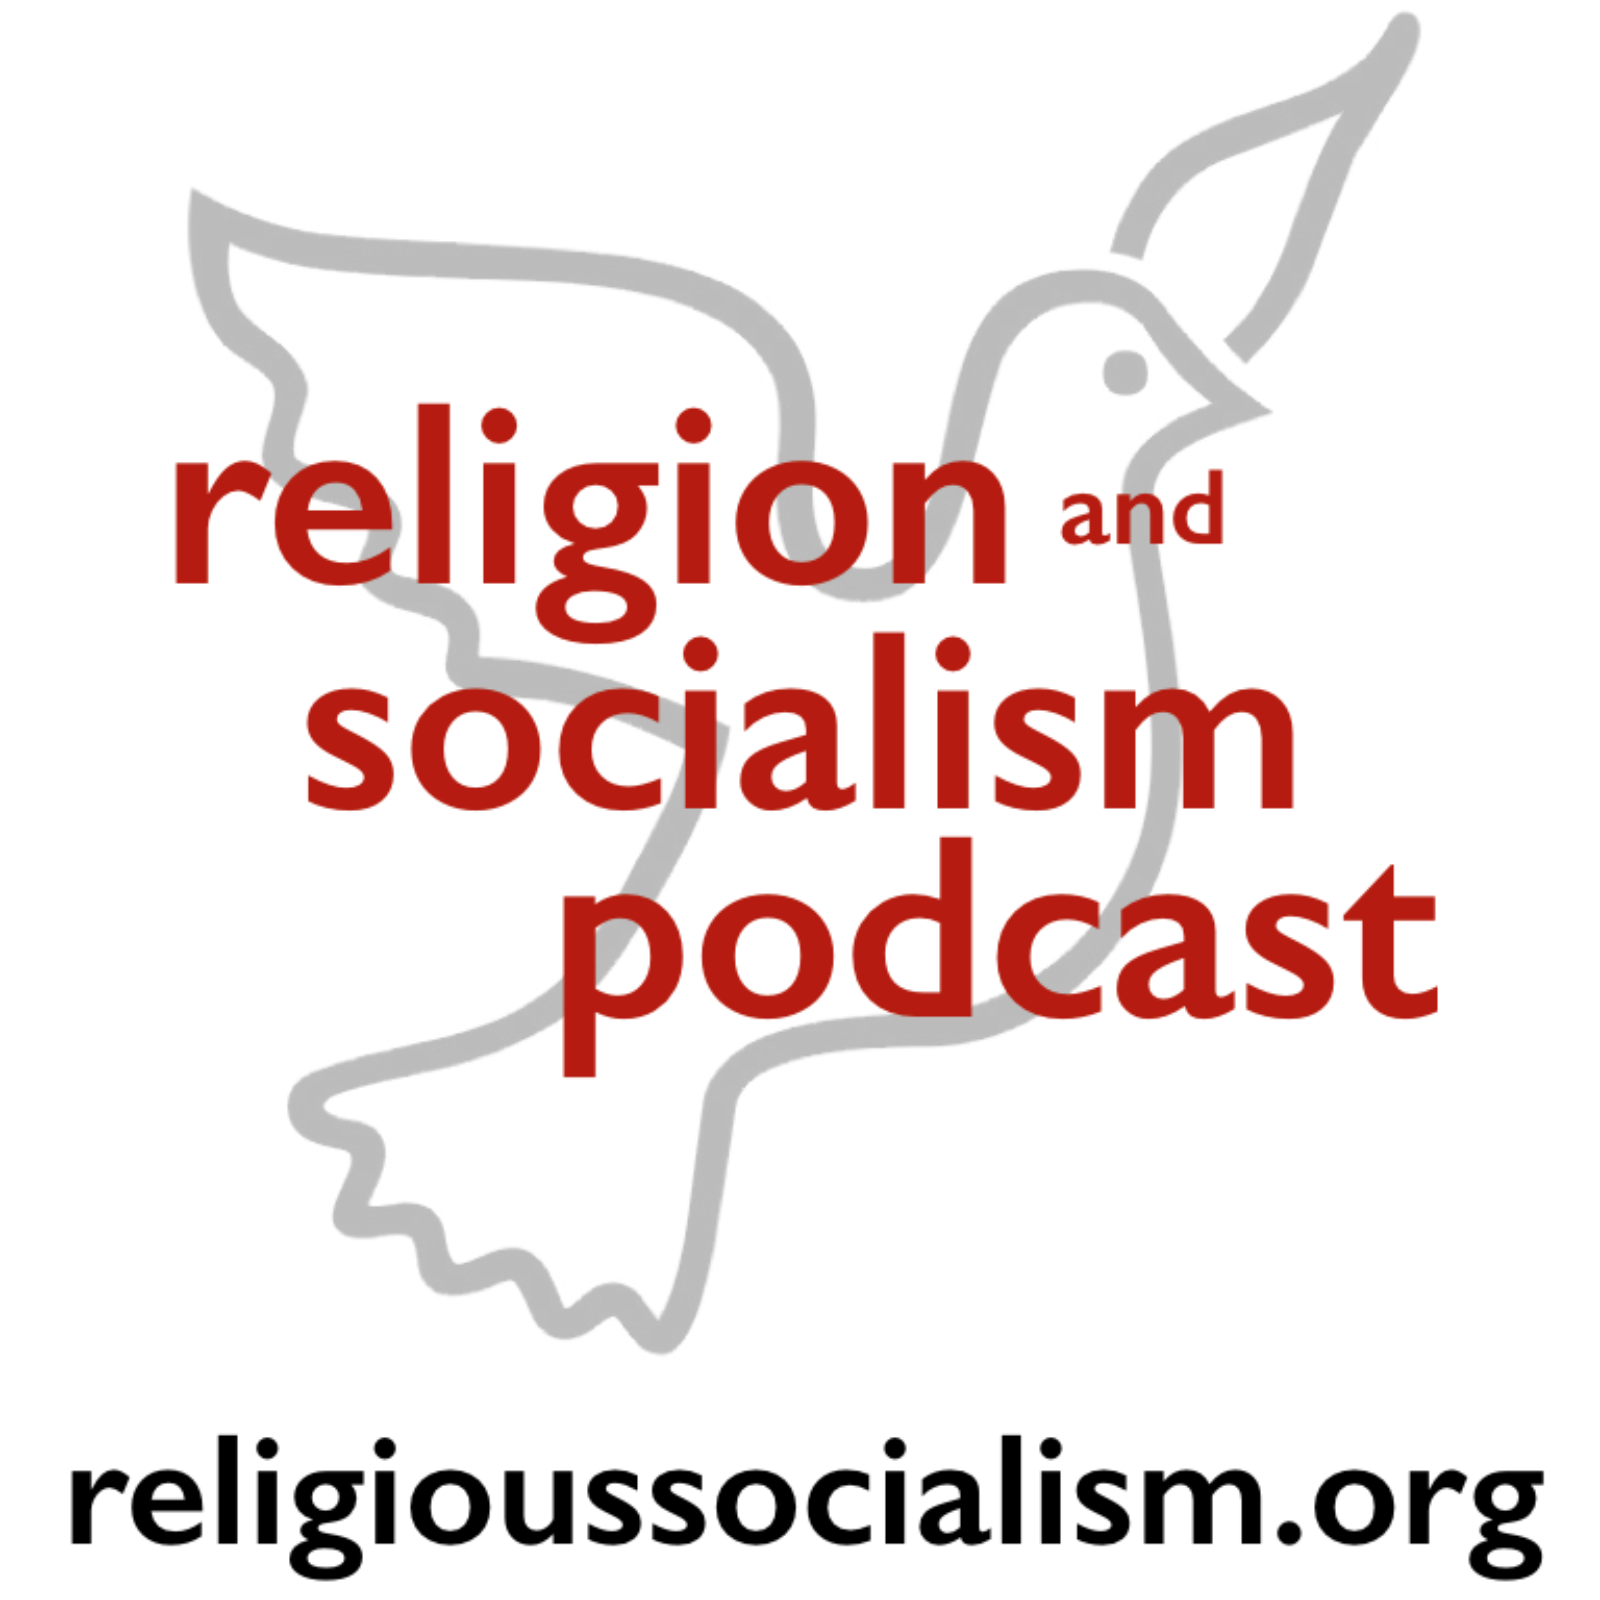 The Religion and Socialism Podcast